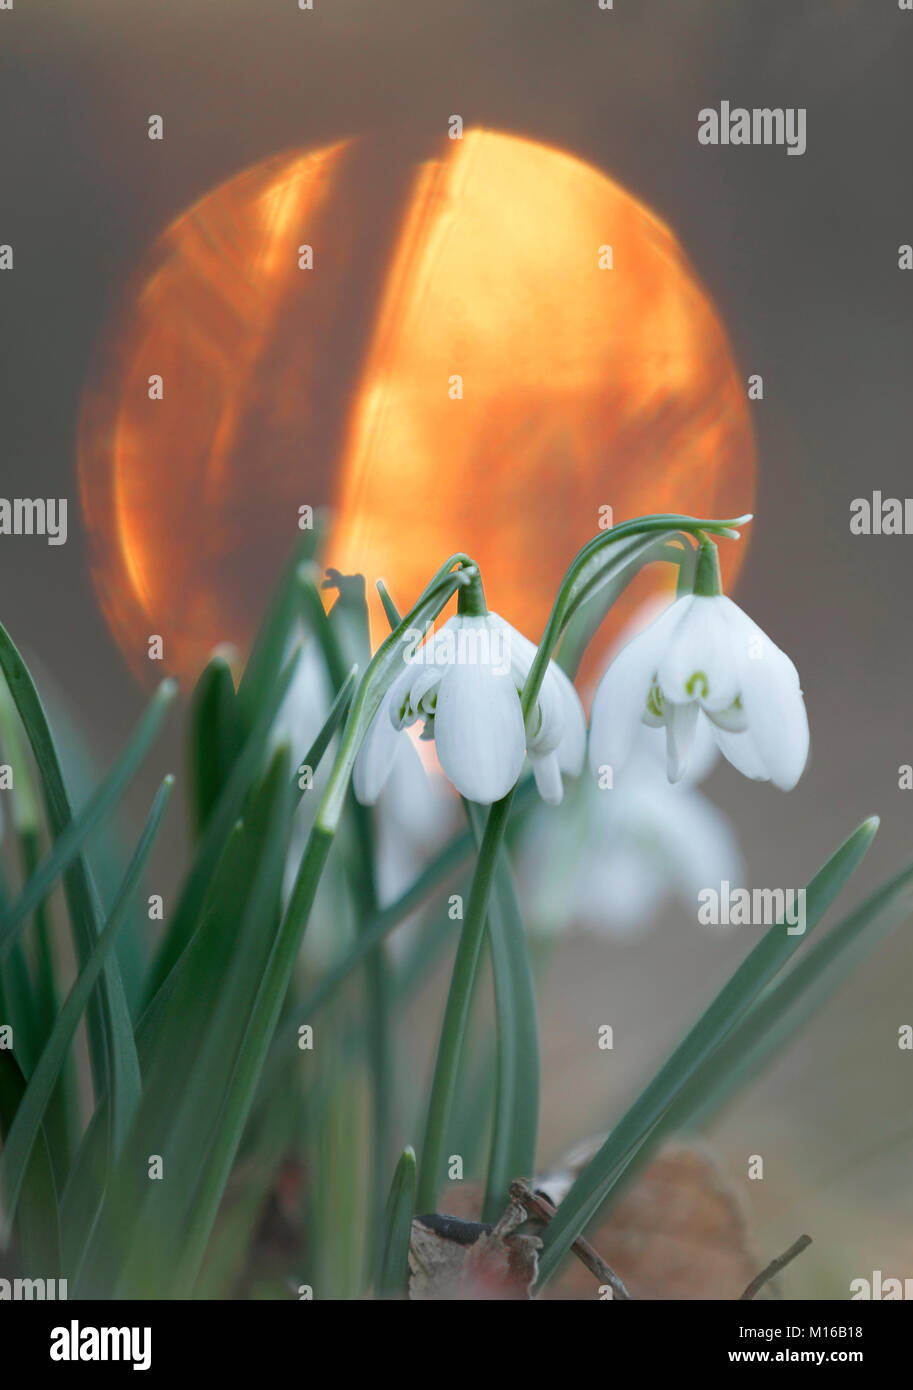 Snowdrops (Galanthus nivalis), sun in the back, National Park Harz, Saxony-Anhalt, Germany - Stock Image